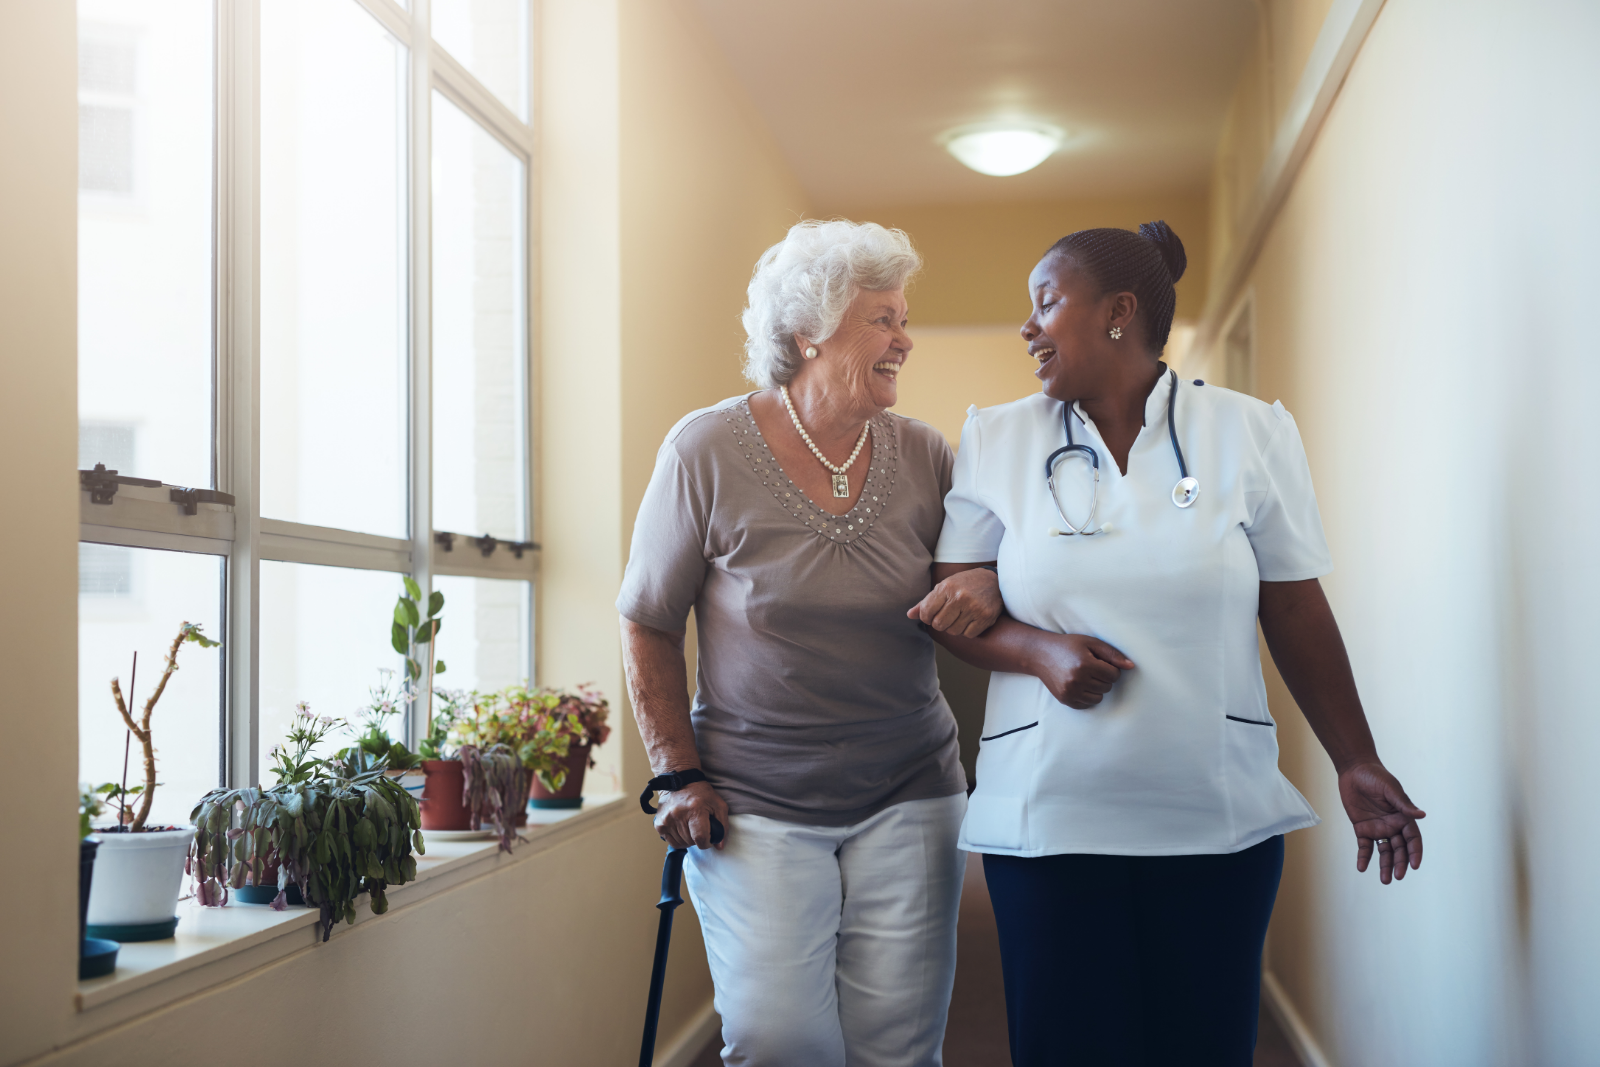 Working as an Assisted Living Nursing Assistant